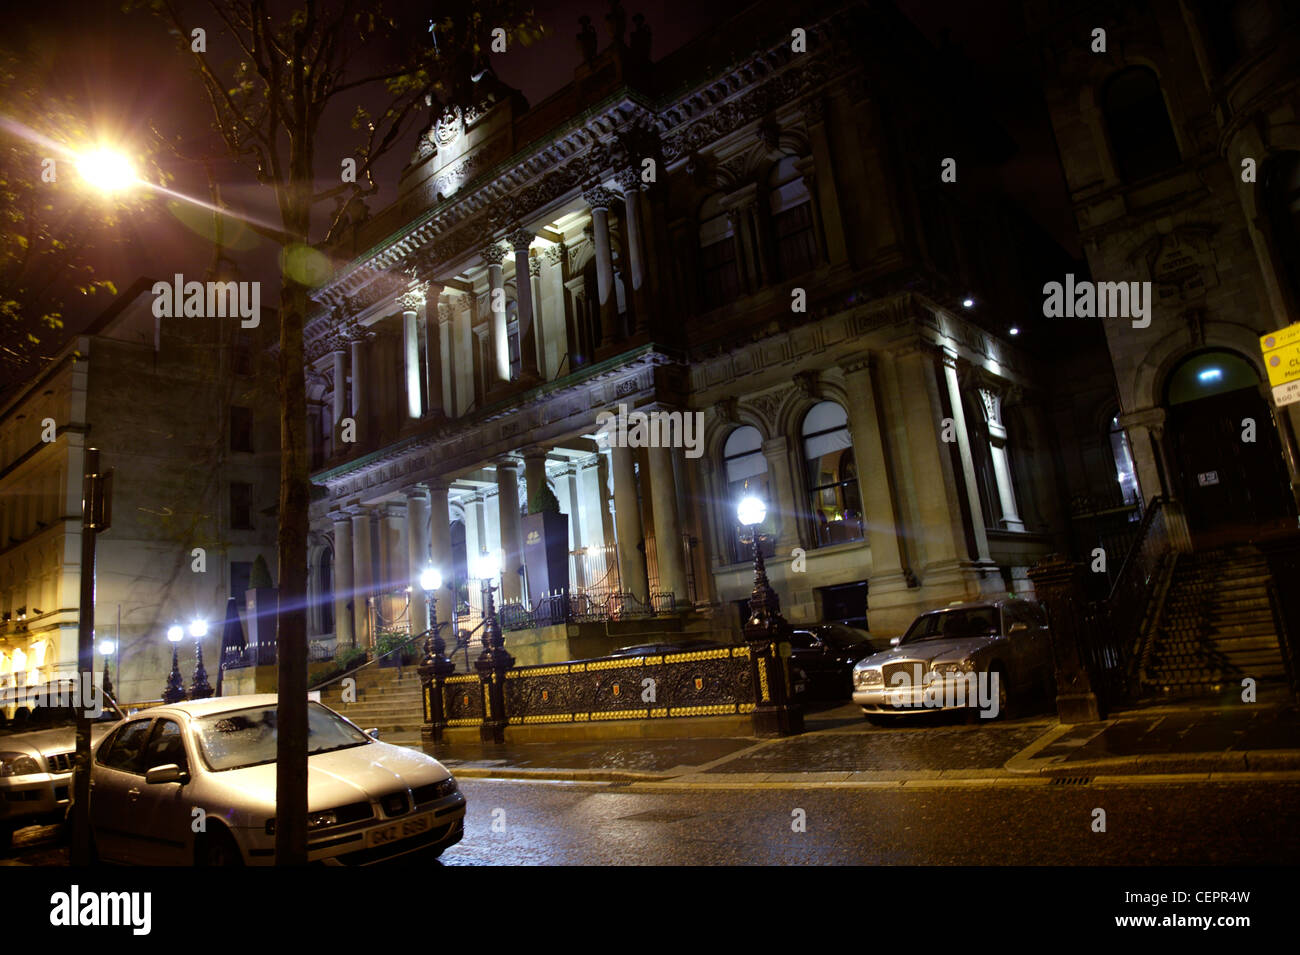 Exterior night view of the grade 1 listed Merchant Hotel in Belfast. Stock Photo